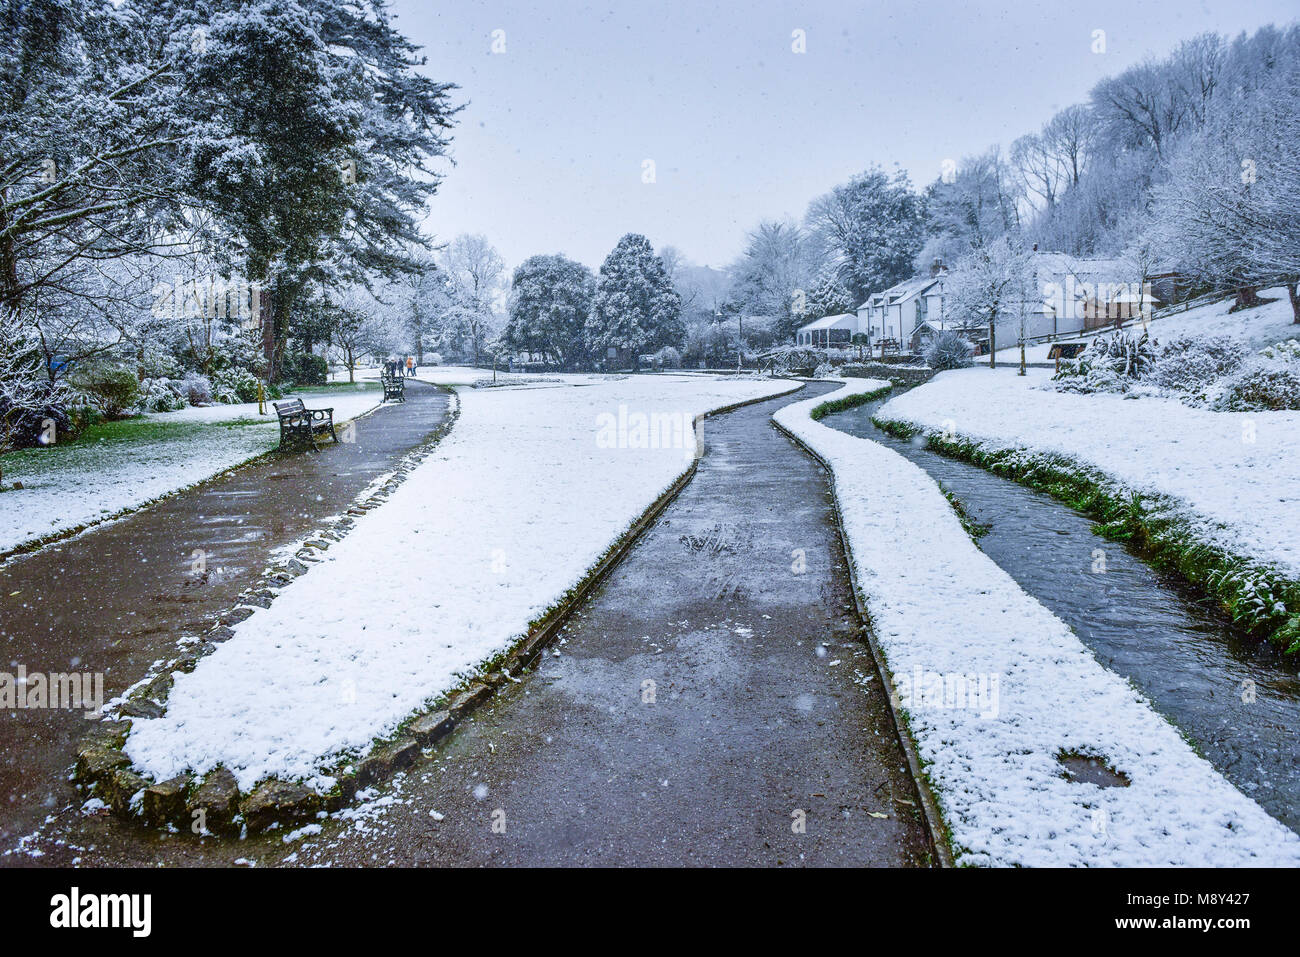 Snowing heavily in Trenance Gardens in Newquay Cornwall. - Stock Image